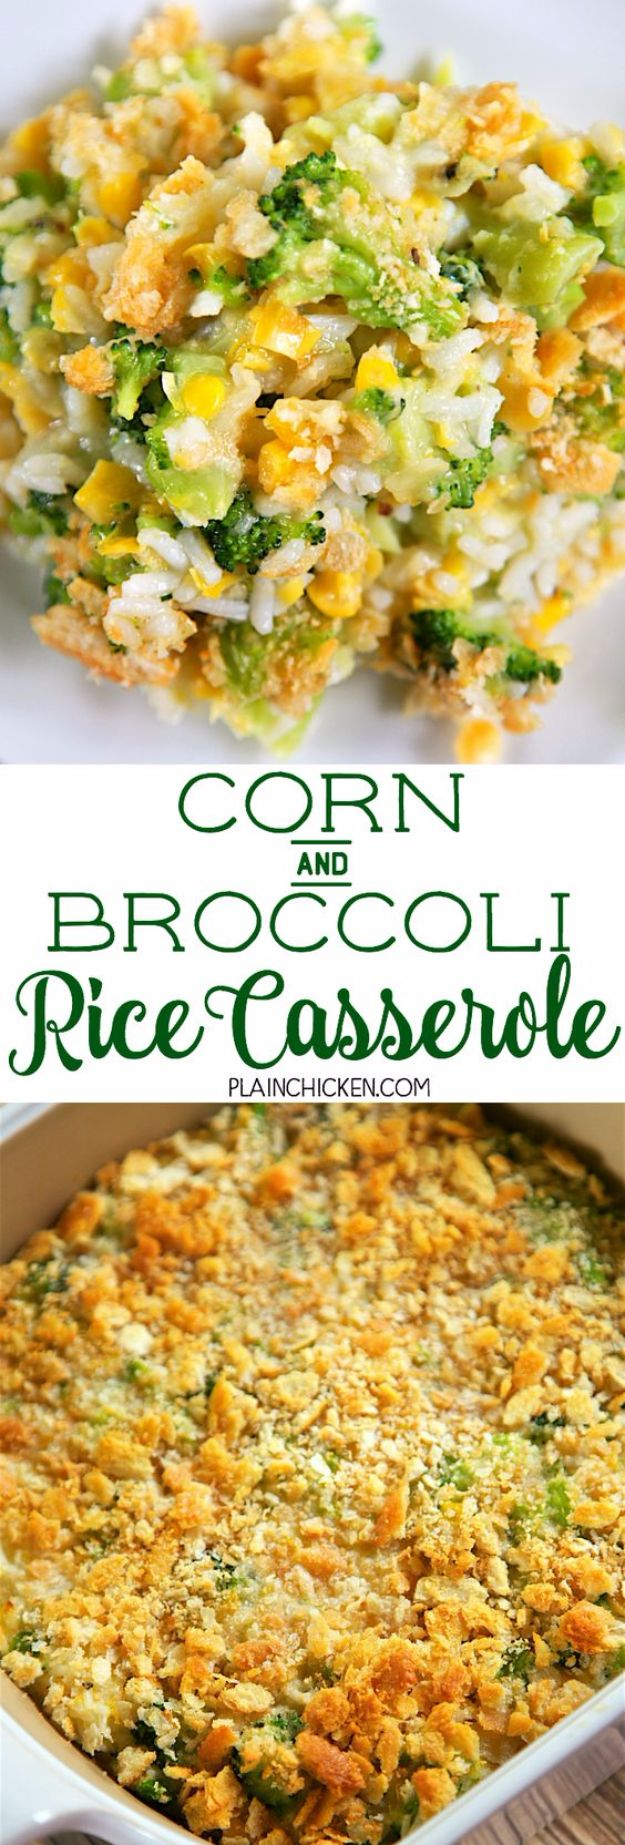 Best Broccoli Recipes - Corn And Broccoli Rice Casserole - Recipe Ideas for Roasted, Steamed, Fresh or Frozen, Healthy, Cheesy, Soup, Salad, Casseroles and Side Dish Vegetables Made With Broccoli. Shrimp, Chicken, Pasta and Paleo Recipes. Easy Dinner, Lunch and Healthy Snacks for Kids and Adults - Homemade Food and Crafts by DIY JOY http://diyjoy.com/best-broccoli-recipes